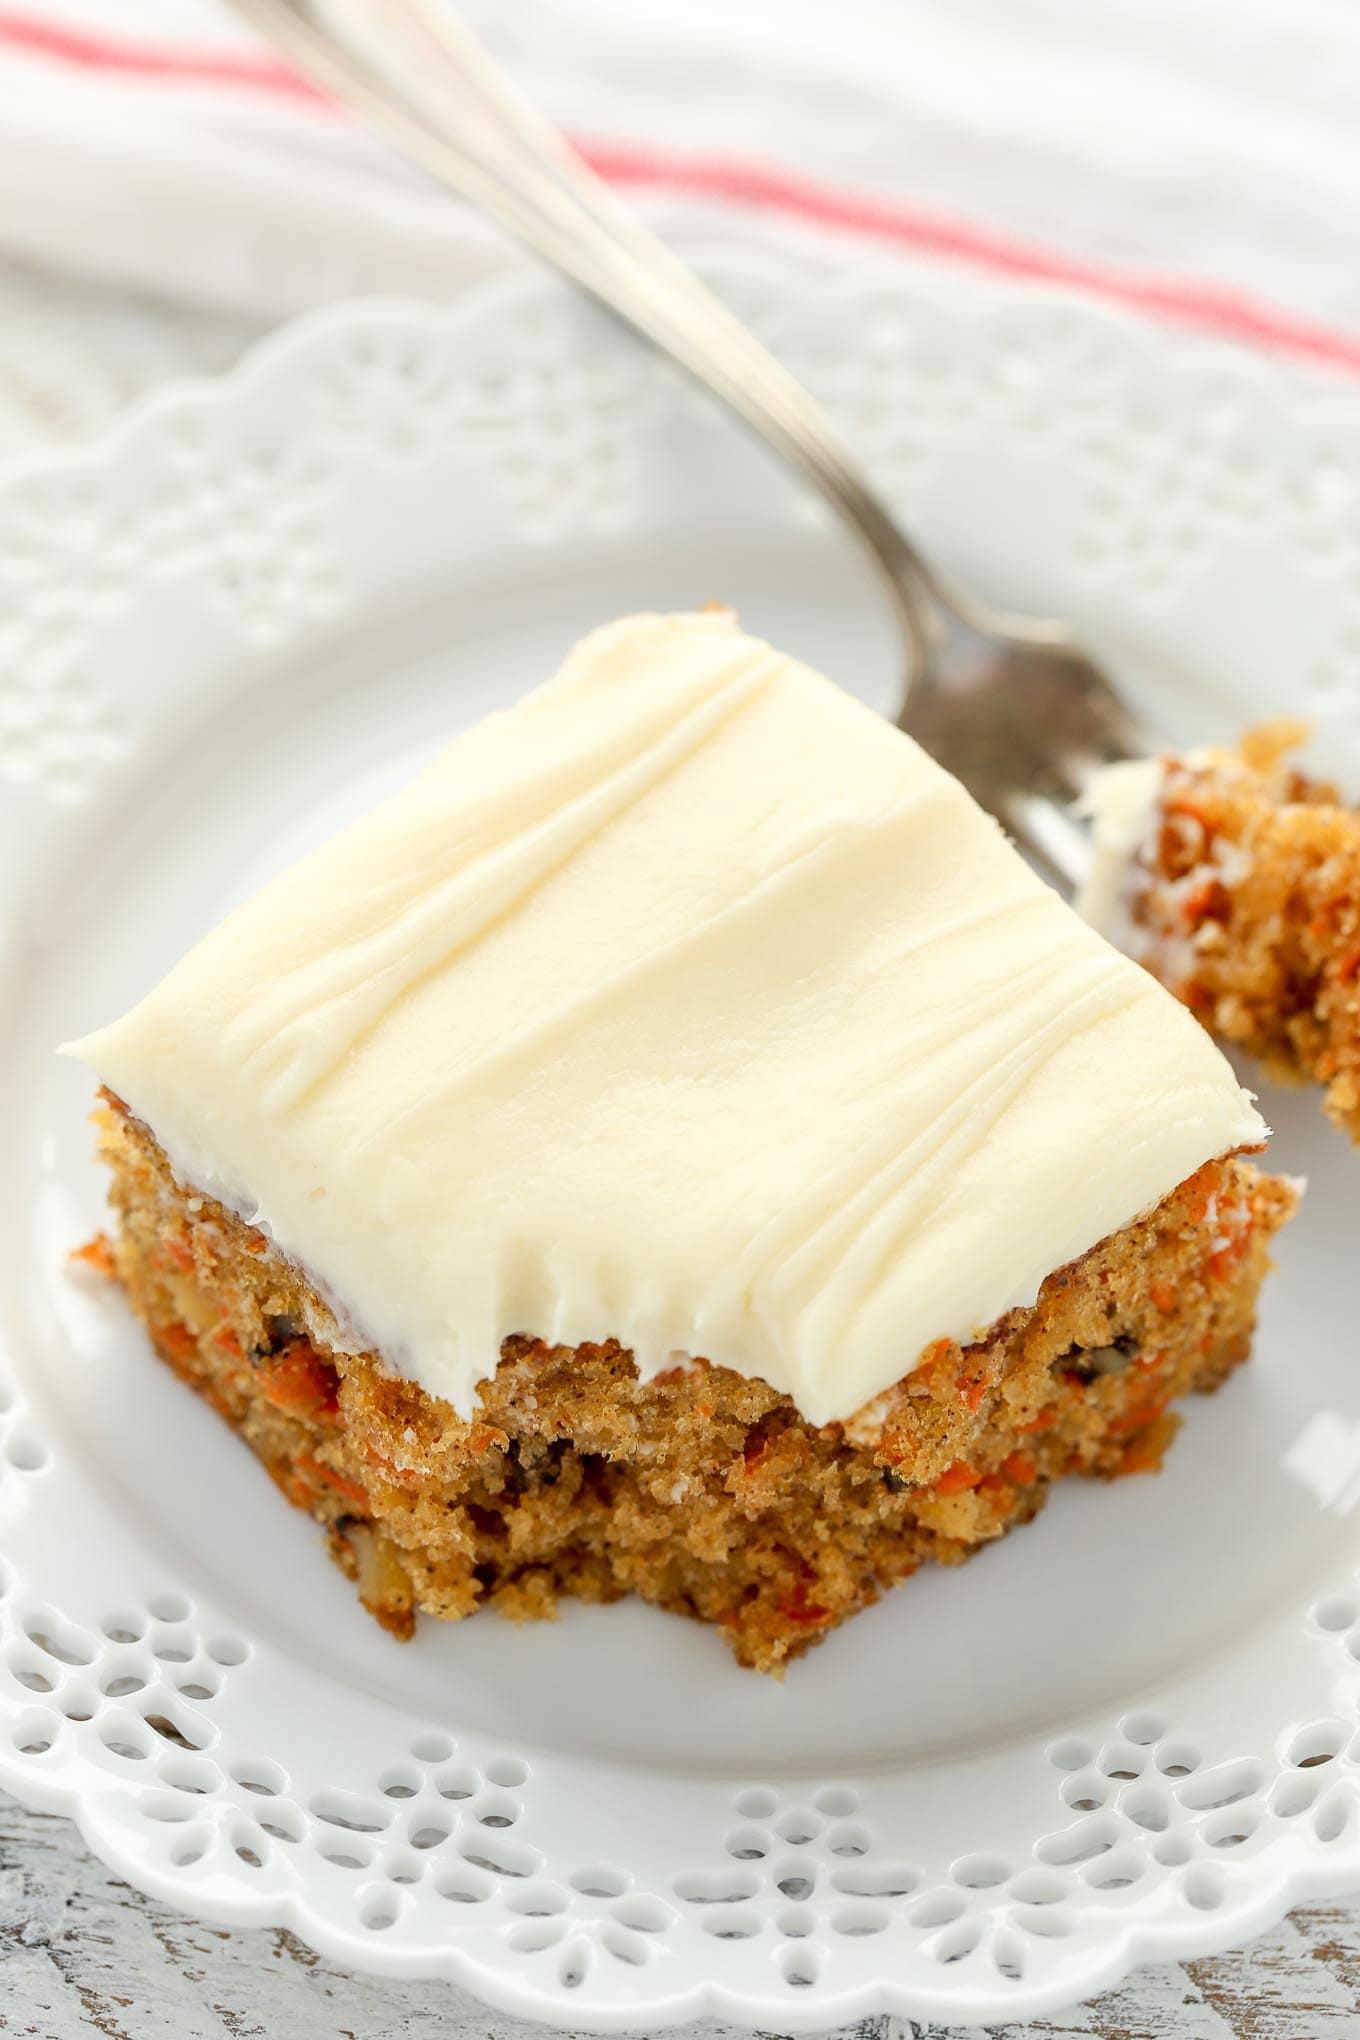 Crushed Pineapple Cake With Cream Cheese Frosting